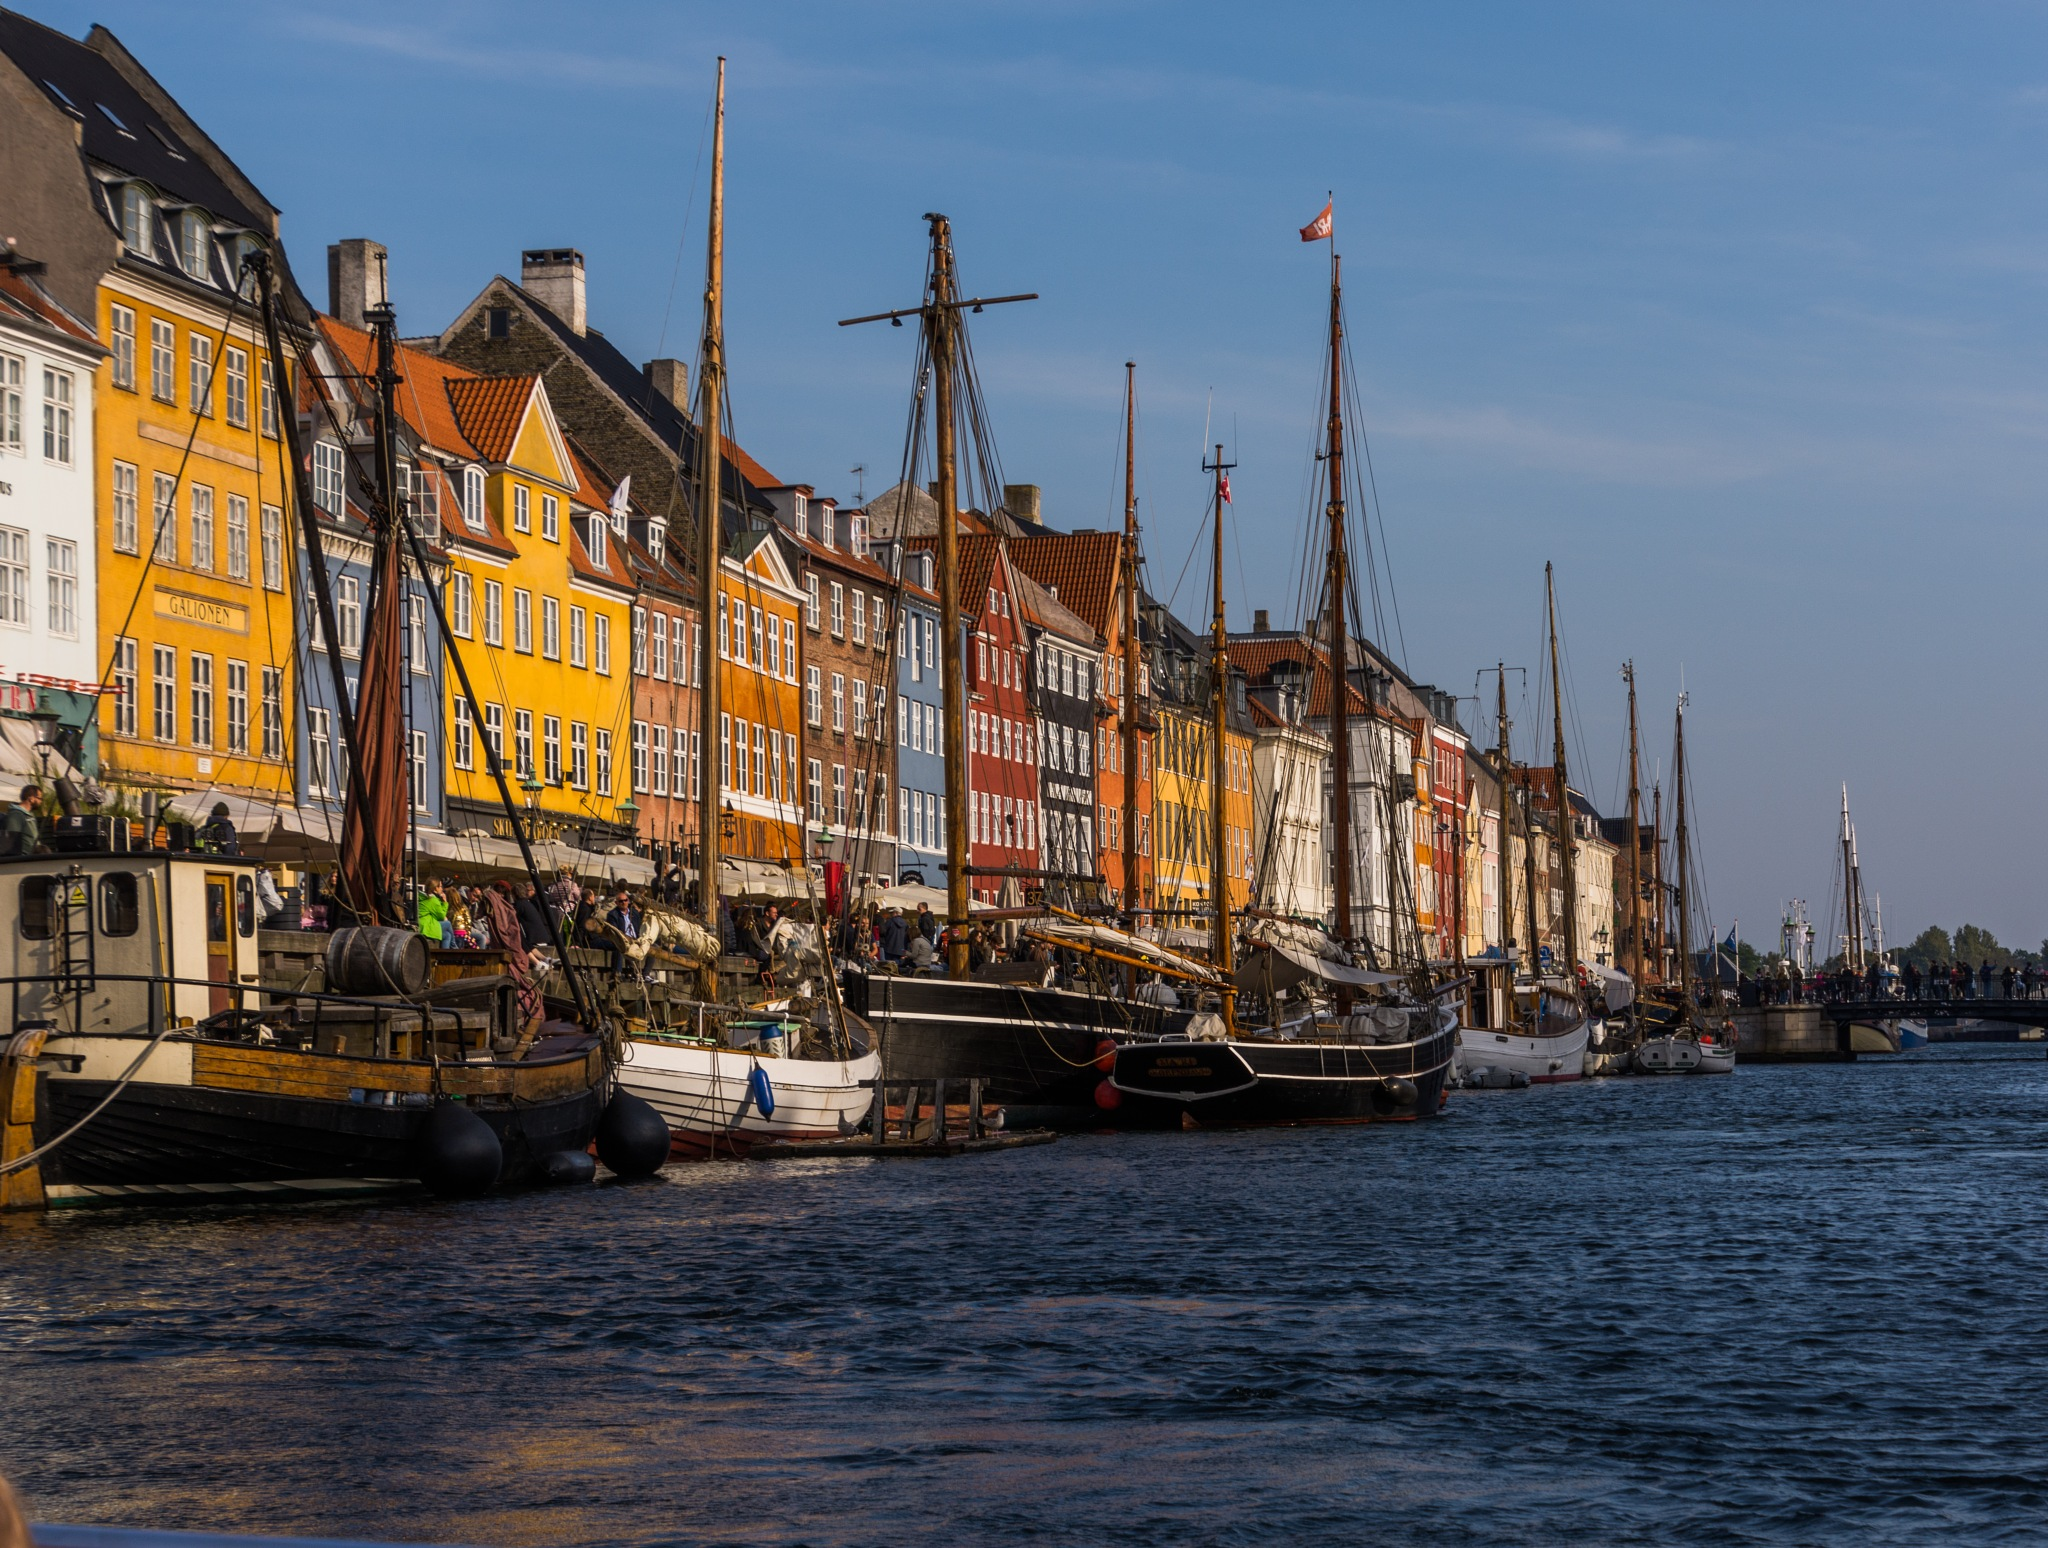 Copenhagen by boat by Johnny Lythell